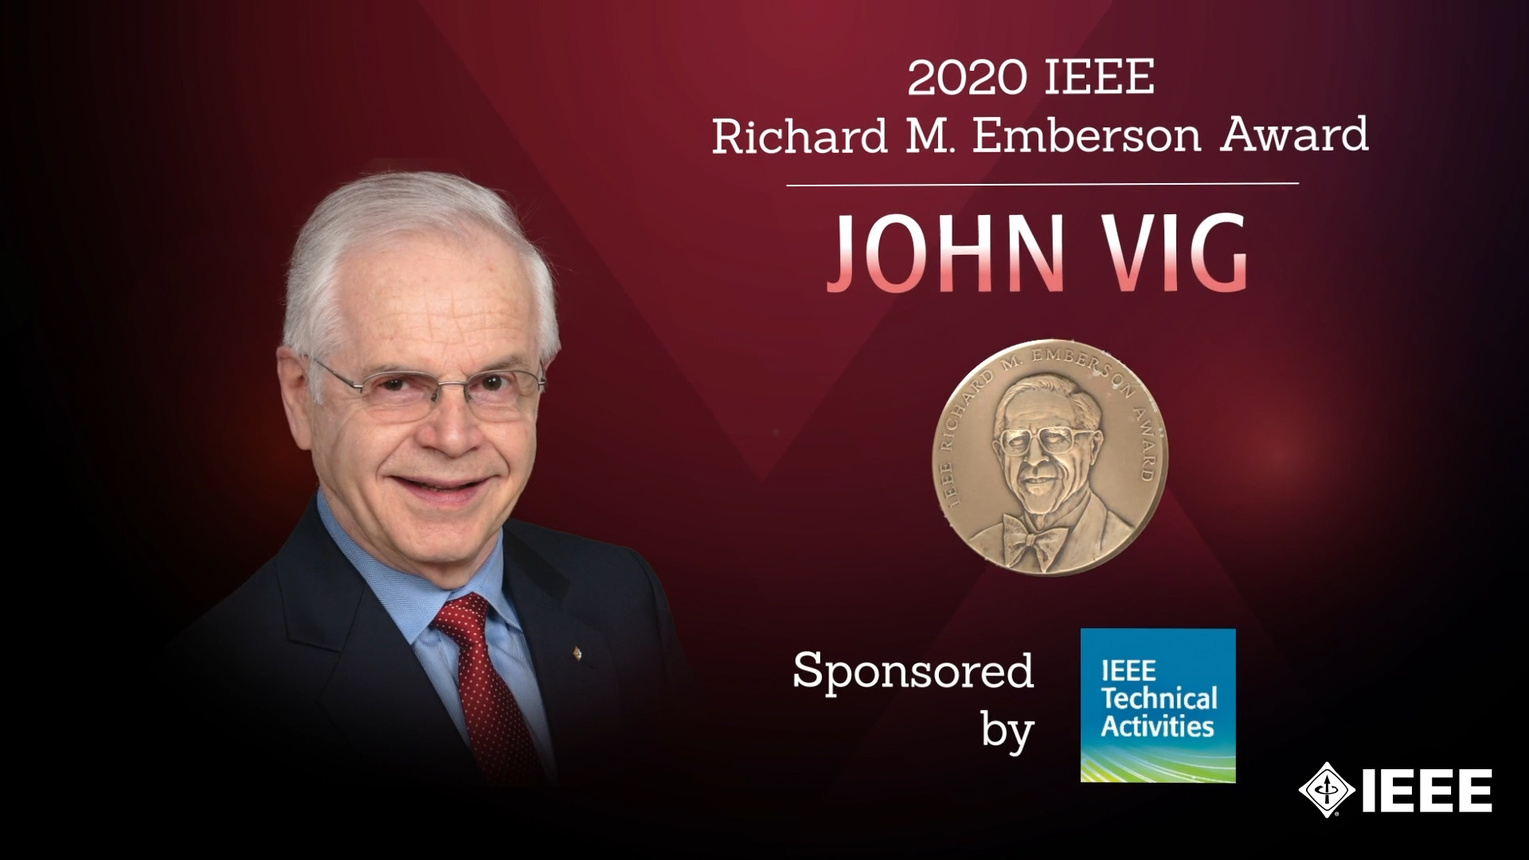 Honors 2020: John Vig Wins the IEEE Richard M. Emberson Award